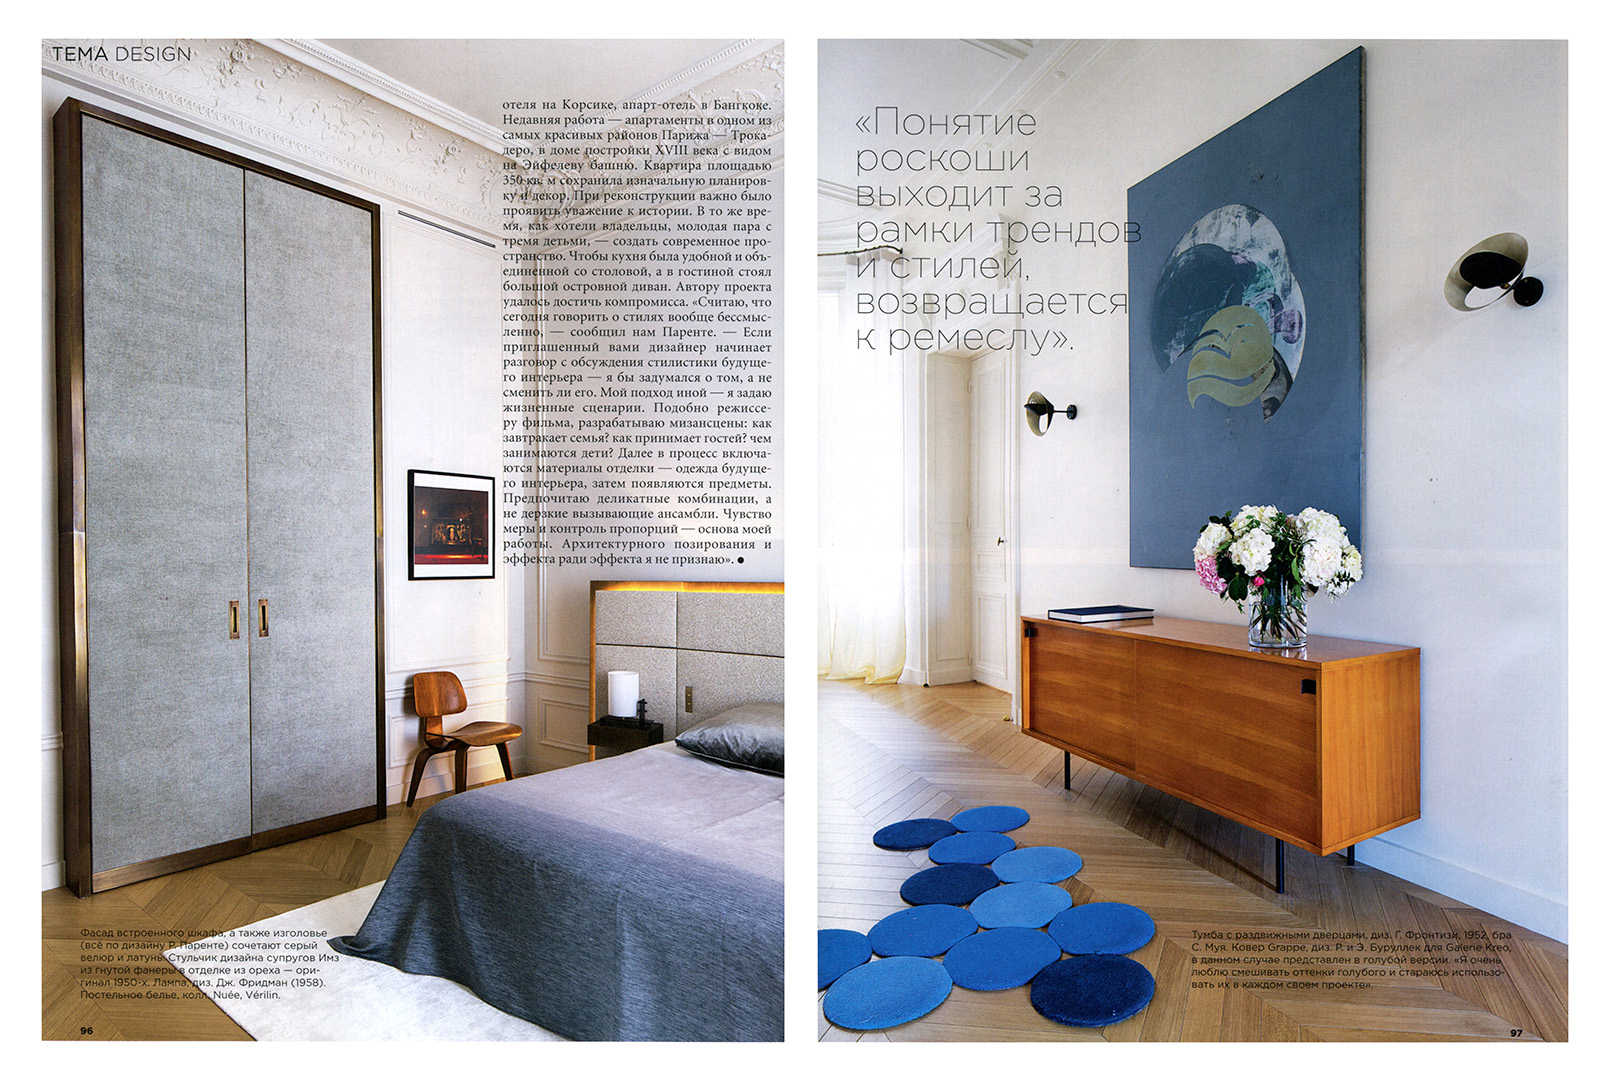 Rodolphe-Parente-Interior-Design-Magazine-2015-04